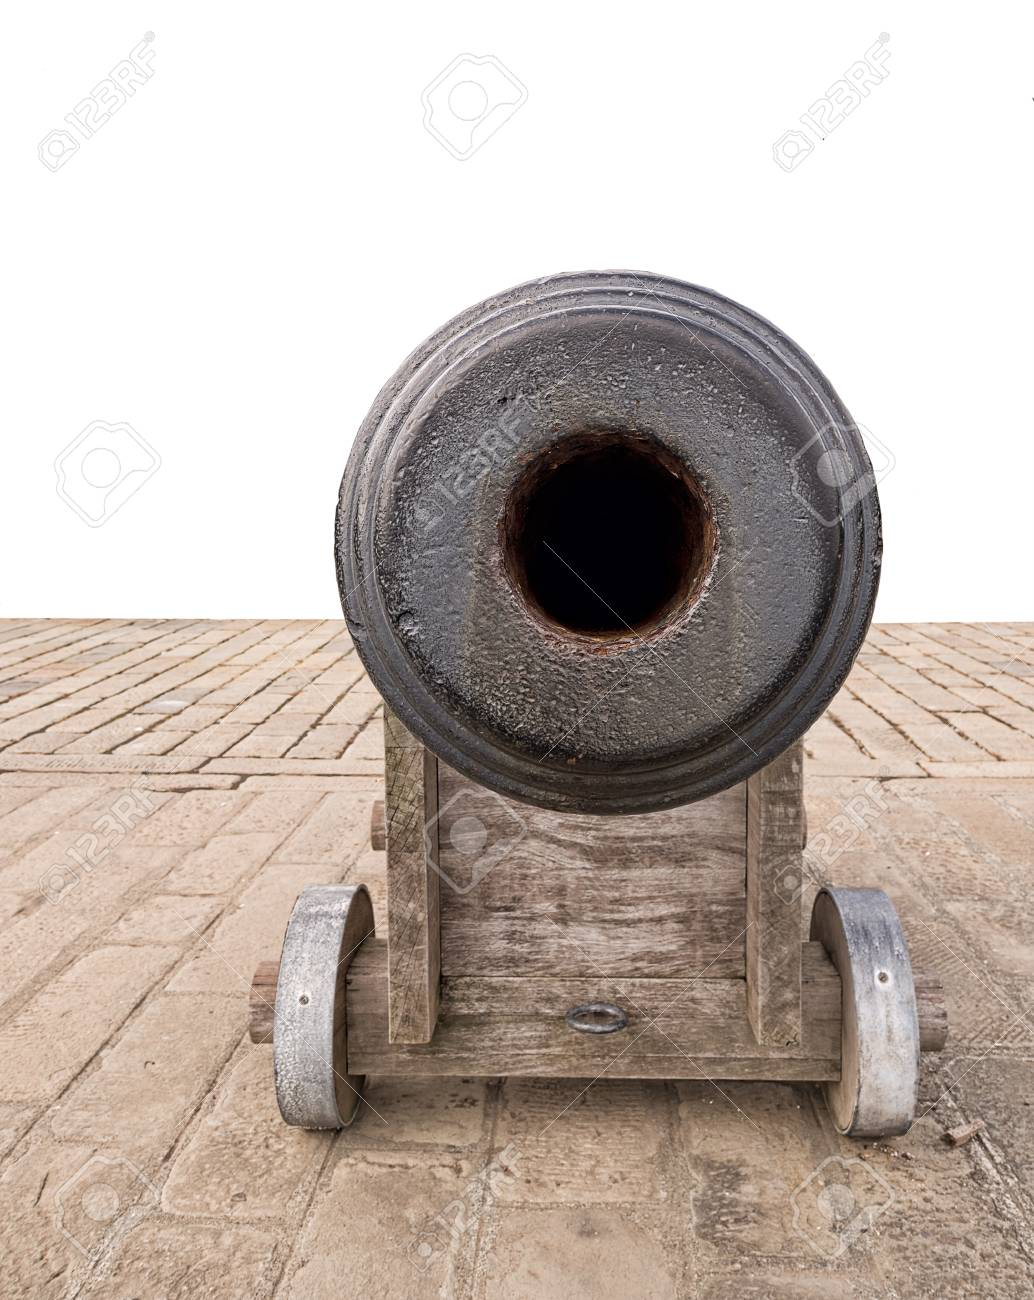 Ancient Cannon View Down The Barrel Of The Gun White Background Stock Photo Picture And Royalty Free Image Image 33657932